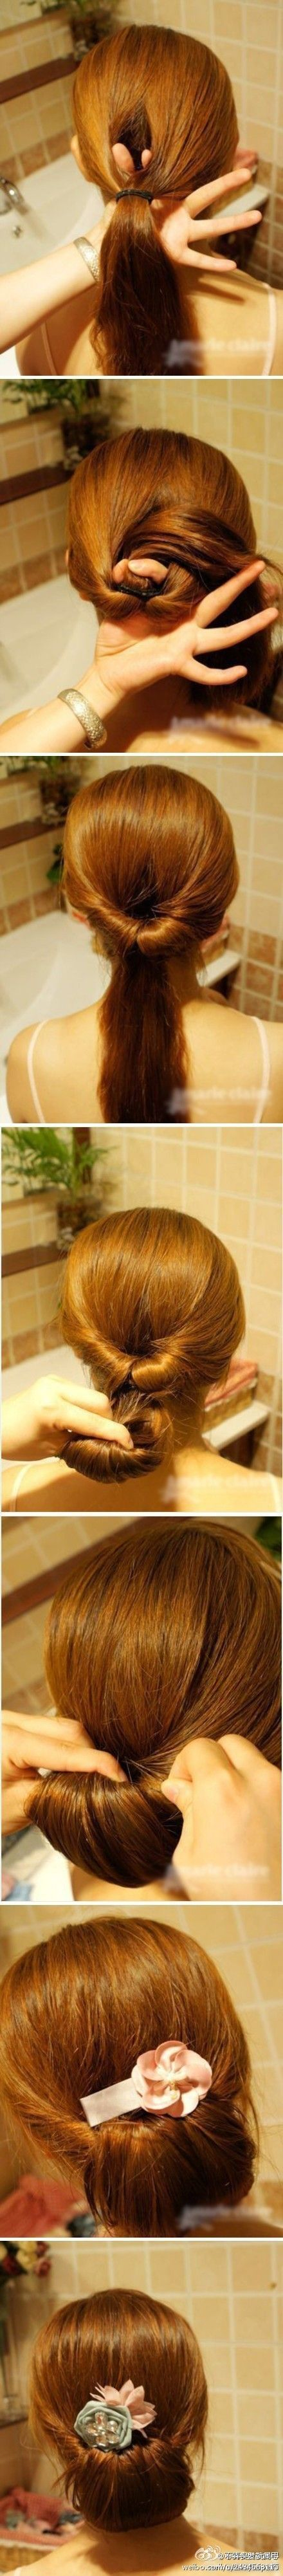 Easy updo hairstyles pinterest easy updo updo and easy